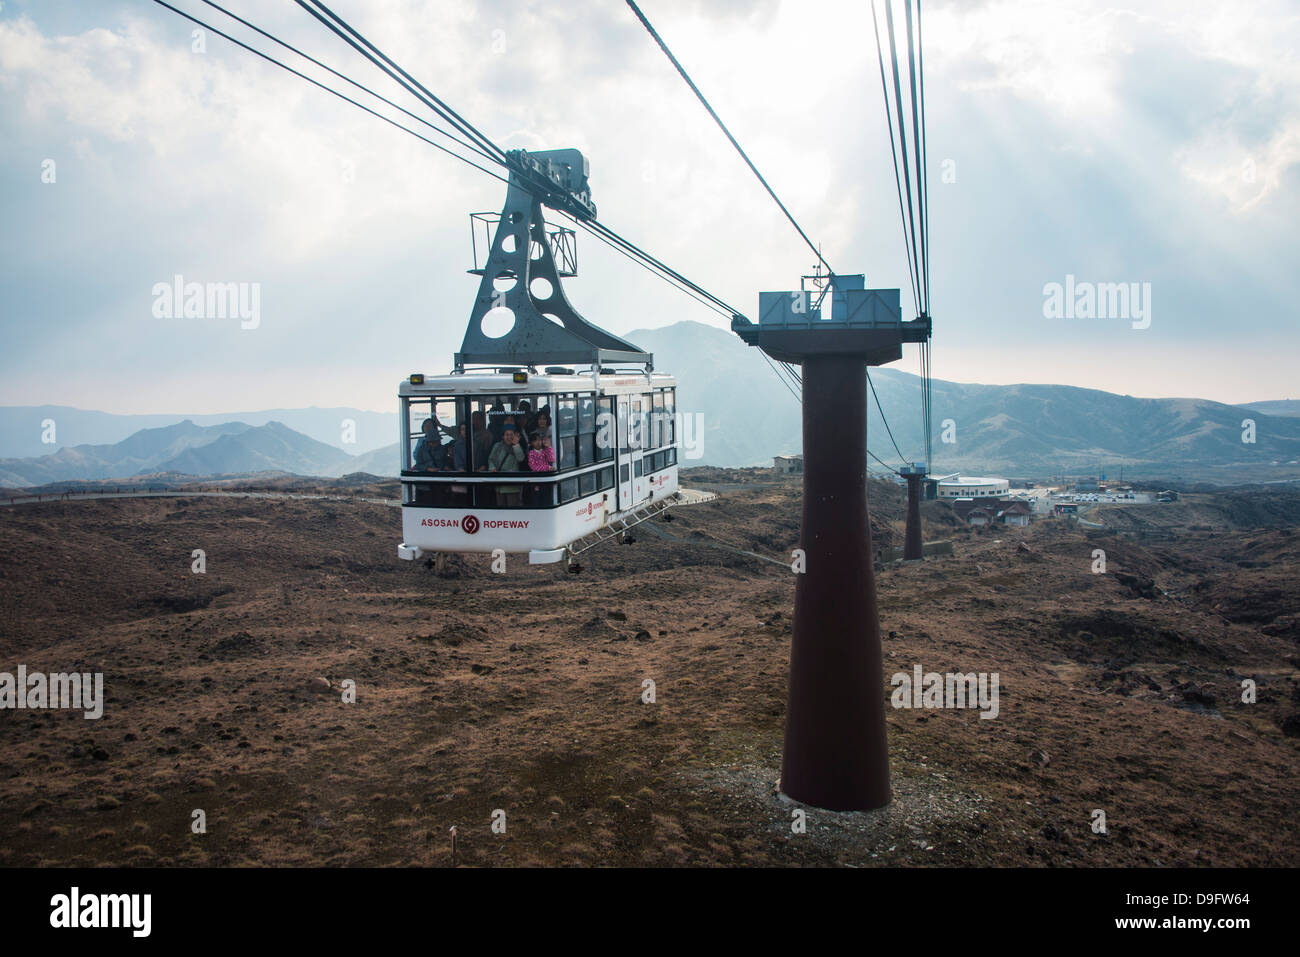 Aerial ropeway on Mount Aso, Kyushu, Japan - Stock Image